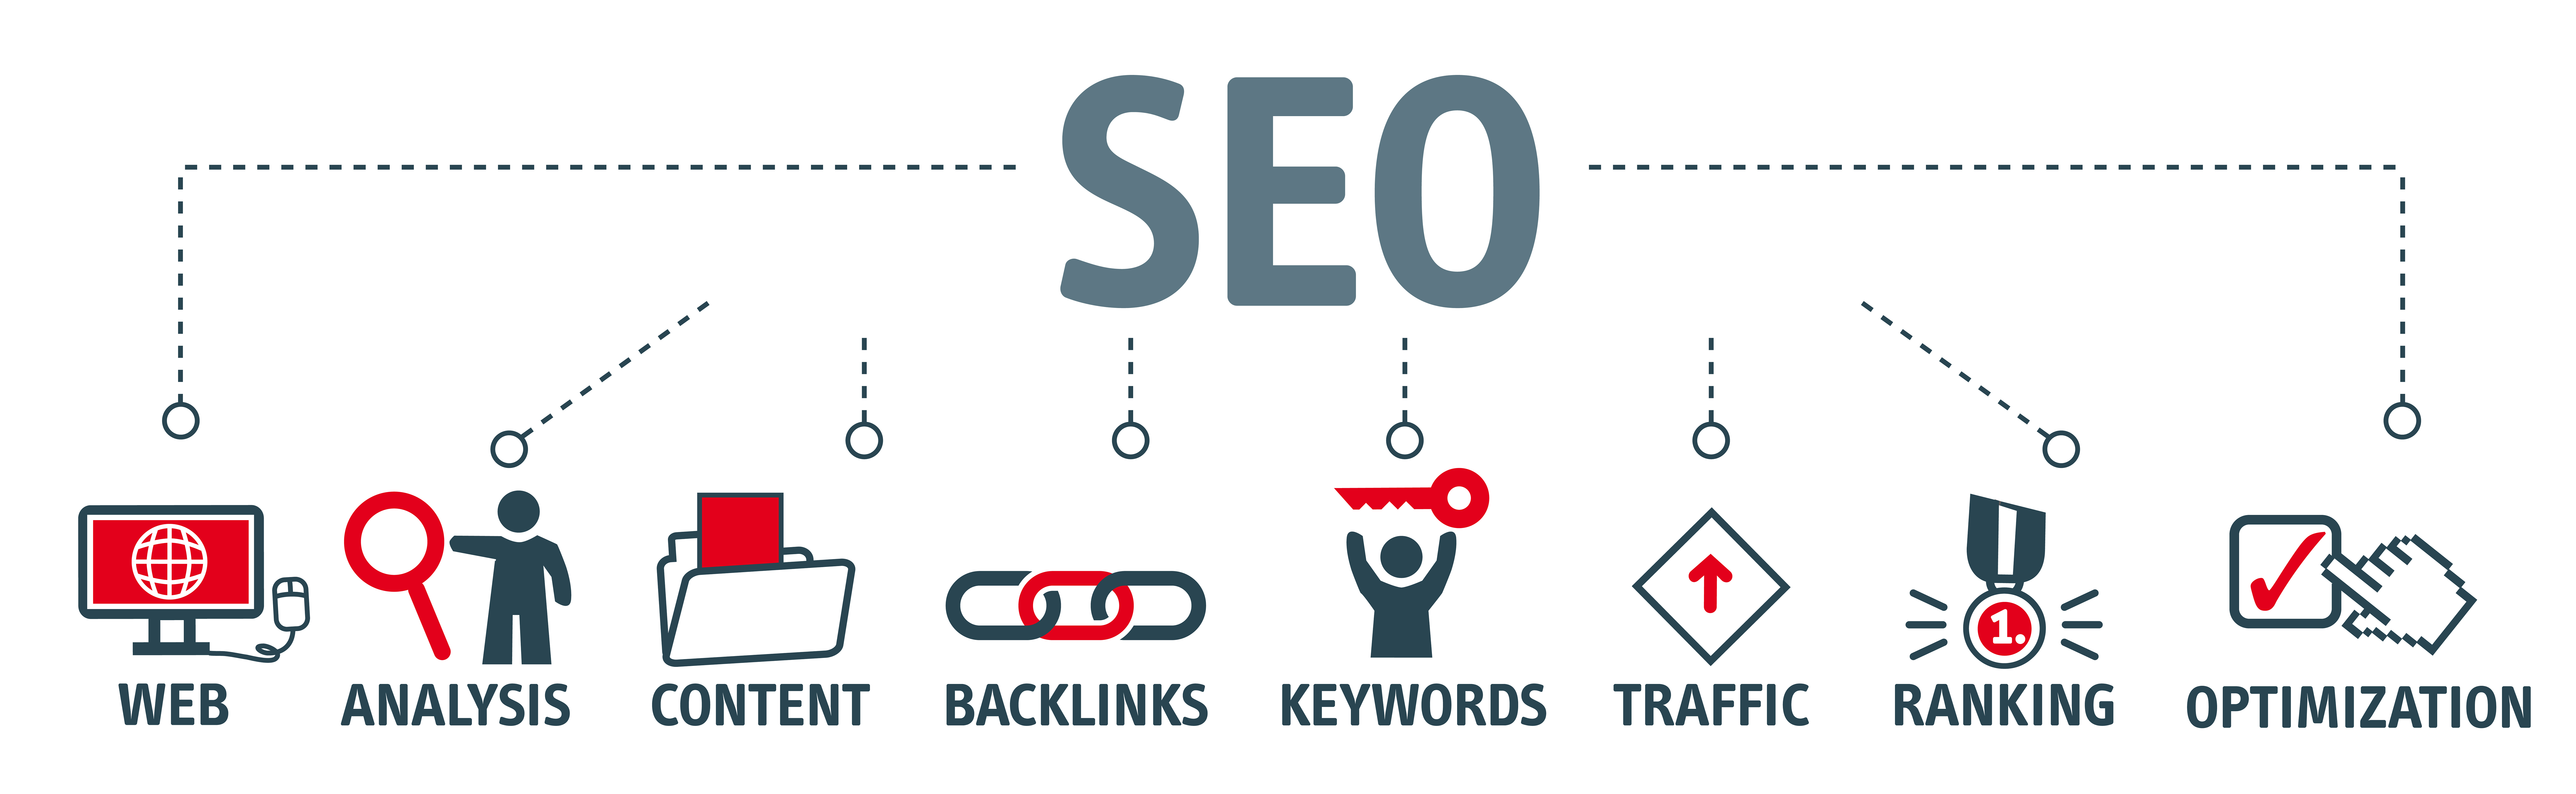 Photo of Pros And Cons Of Outsourcing An SEO Expert Consulting Business